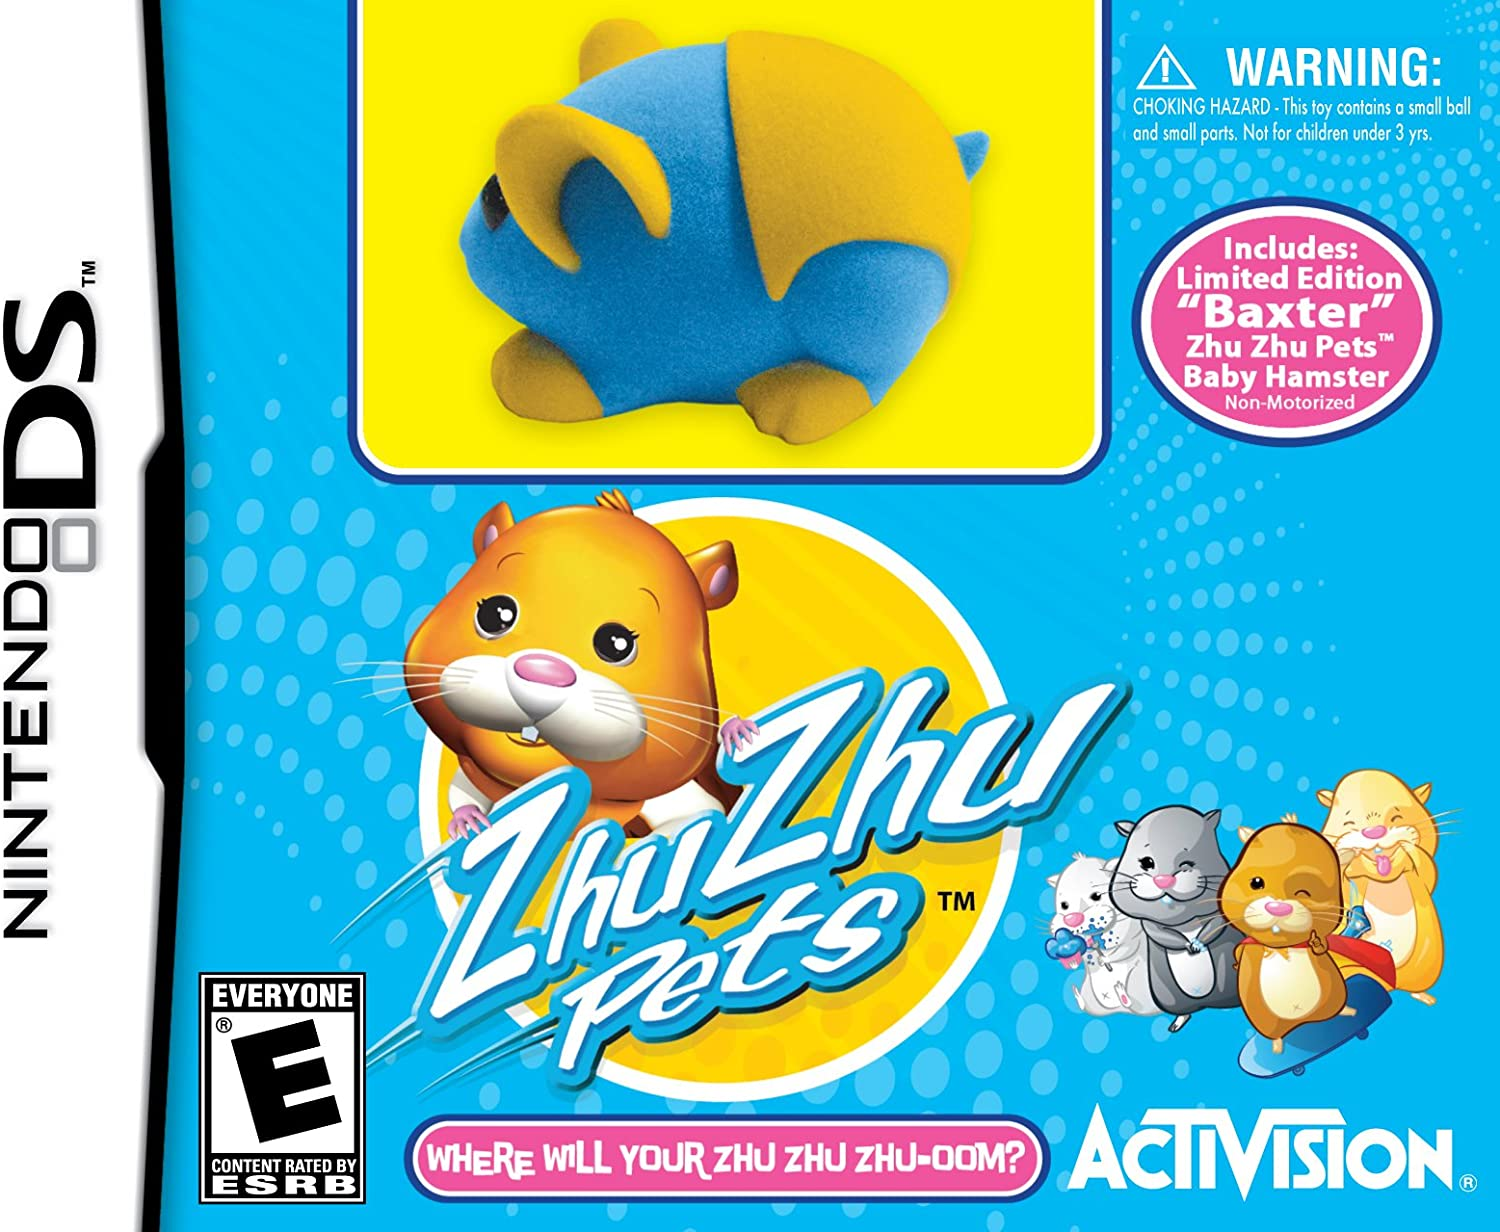 Coloring pages zhu zhu pets - Amazoncom Zhu Zhu Pets Special Edition With Baby Hamster 81d3mmlt 2l B0031ks9xq Zhu Zhu Pets Games Coloring Pages Zhu Zhu Pets Games Coloring Pages